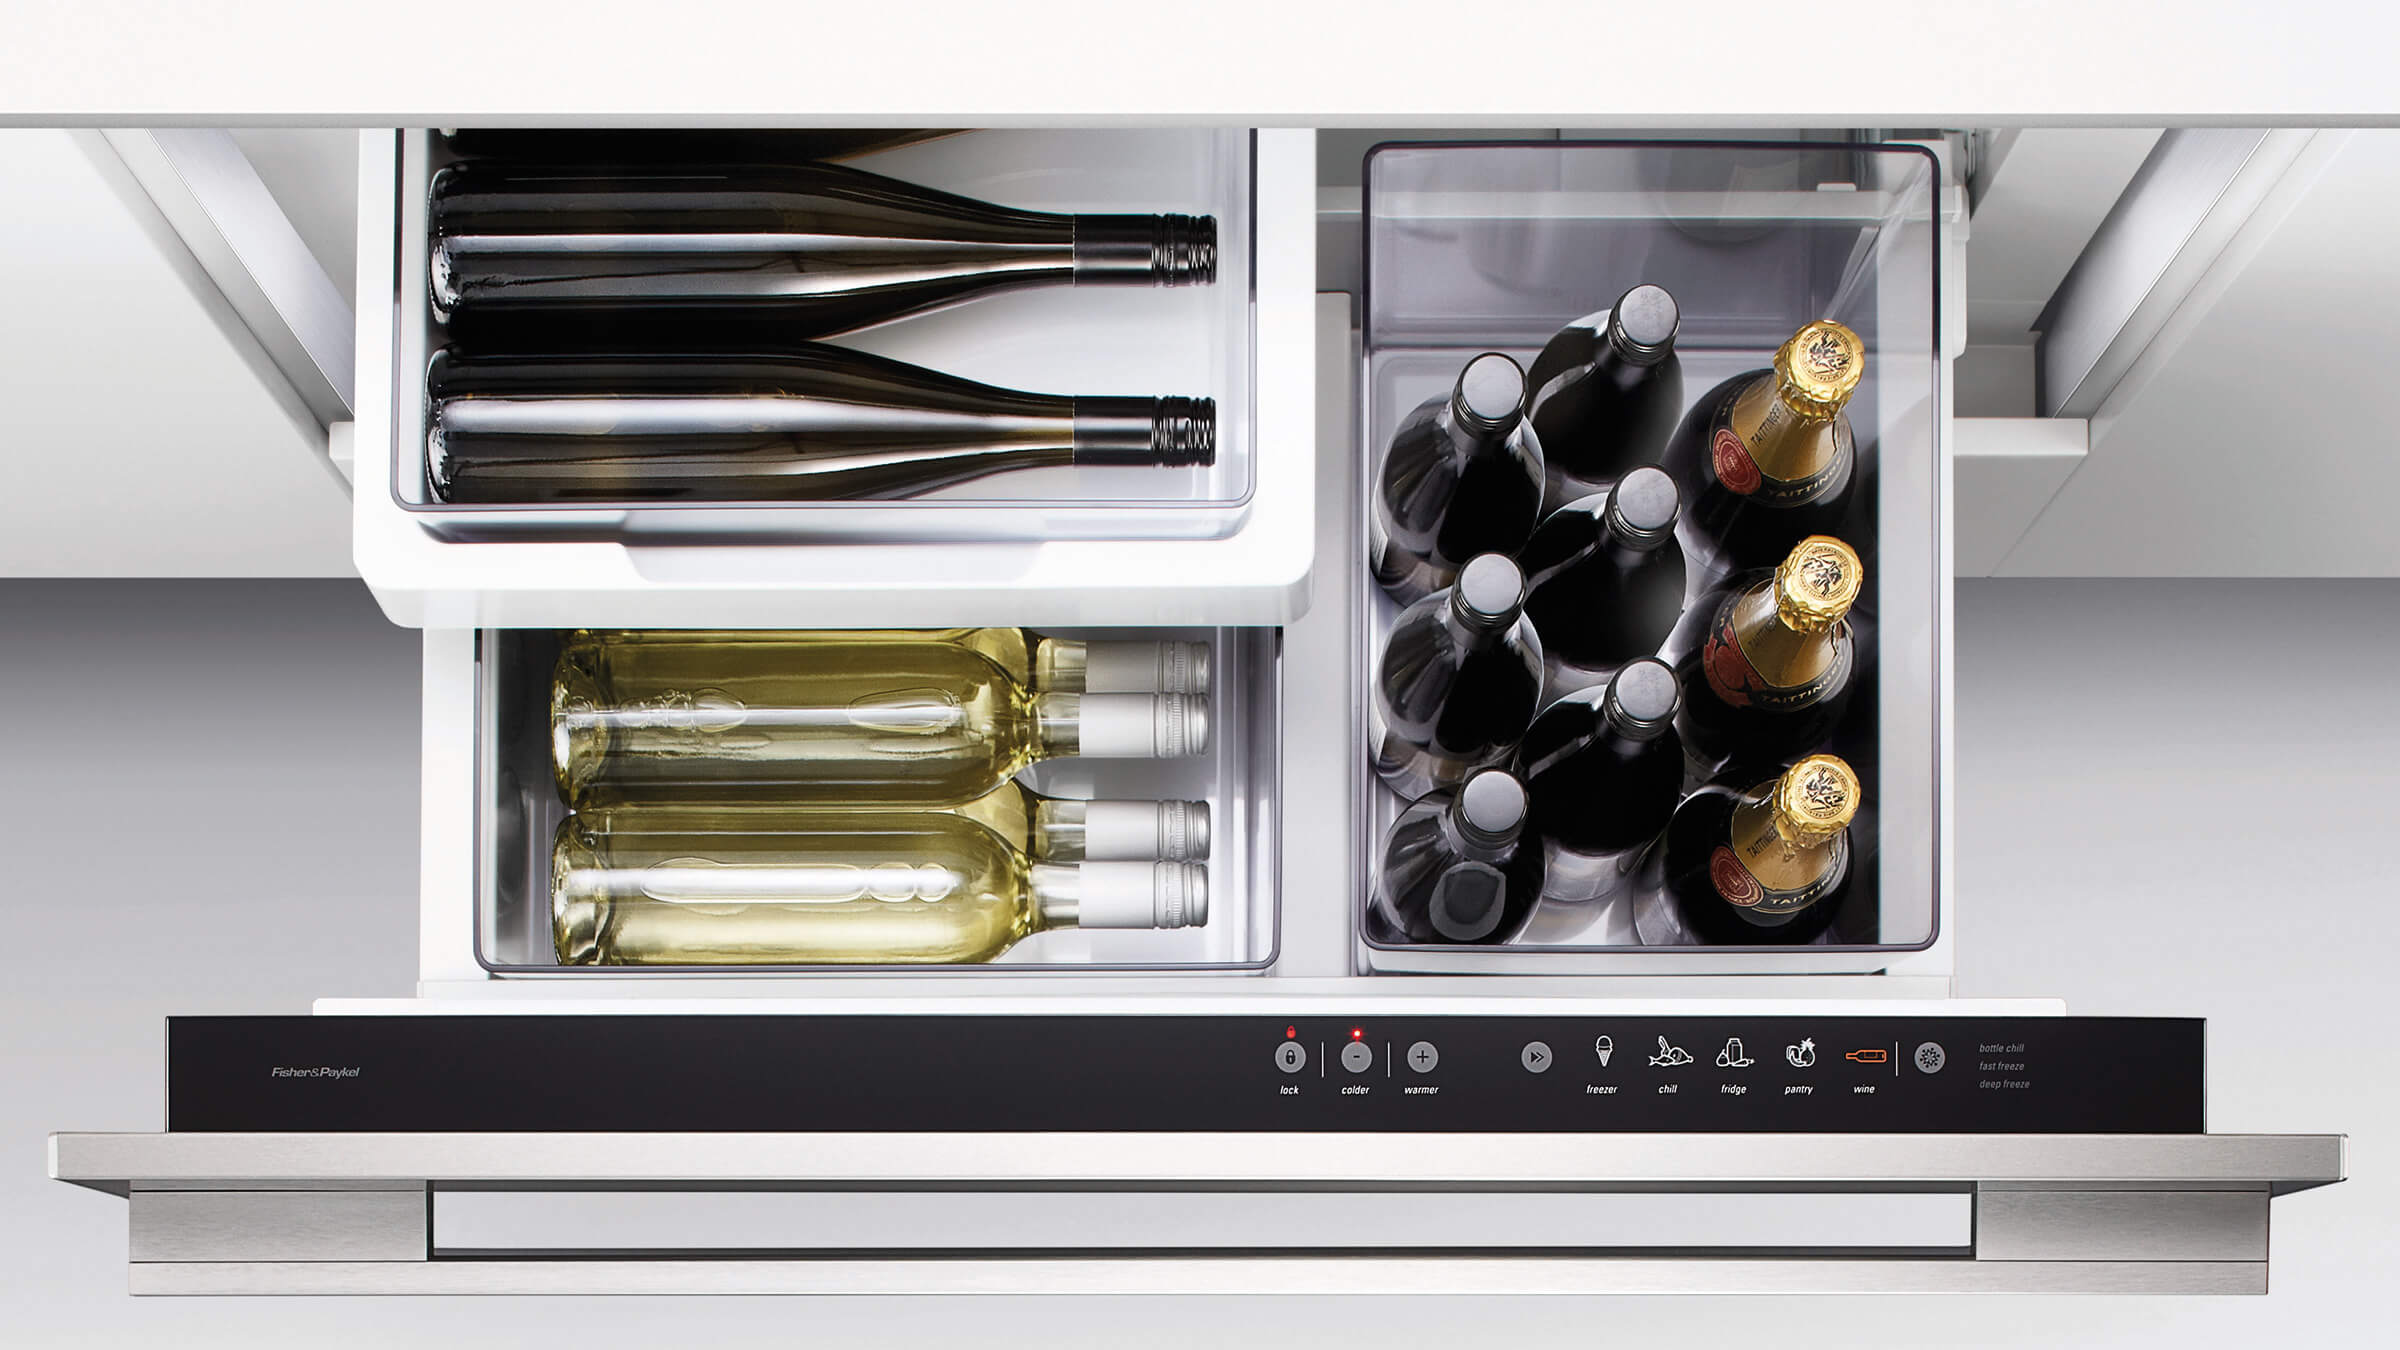 RB90S64MKIW1 - CoolDrawer™ Multi-Temperature Drawer